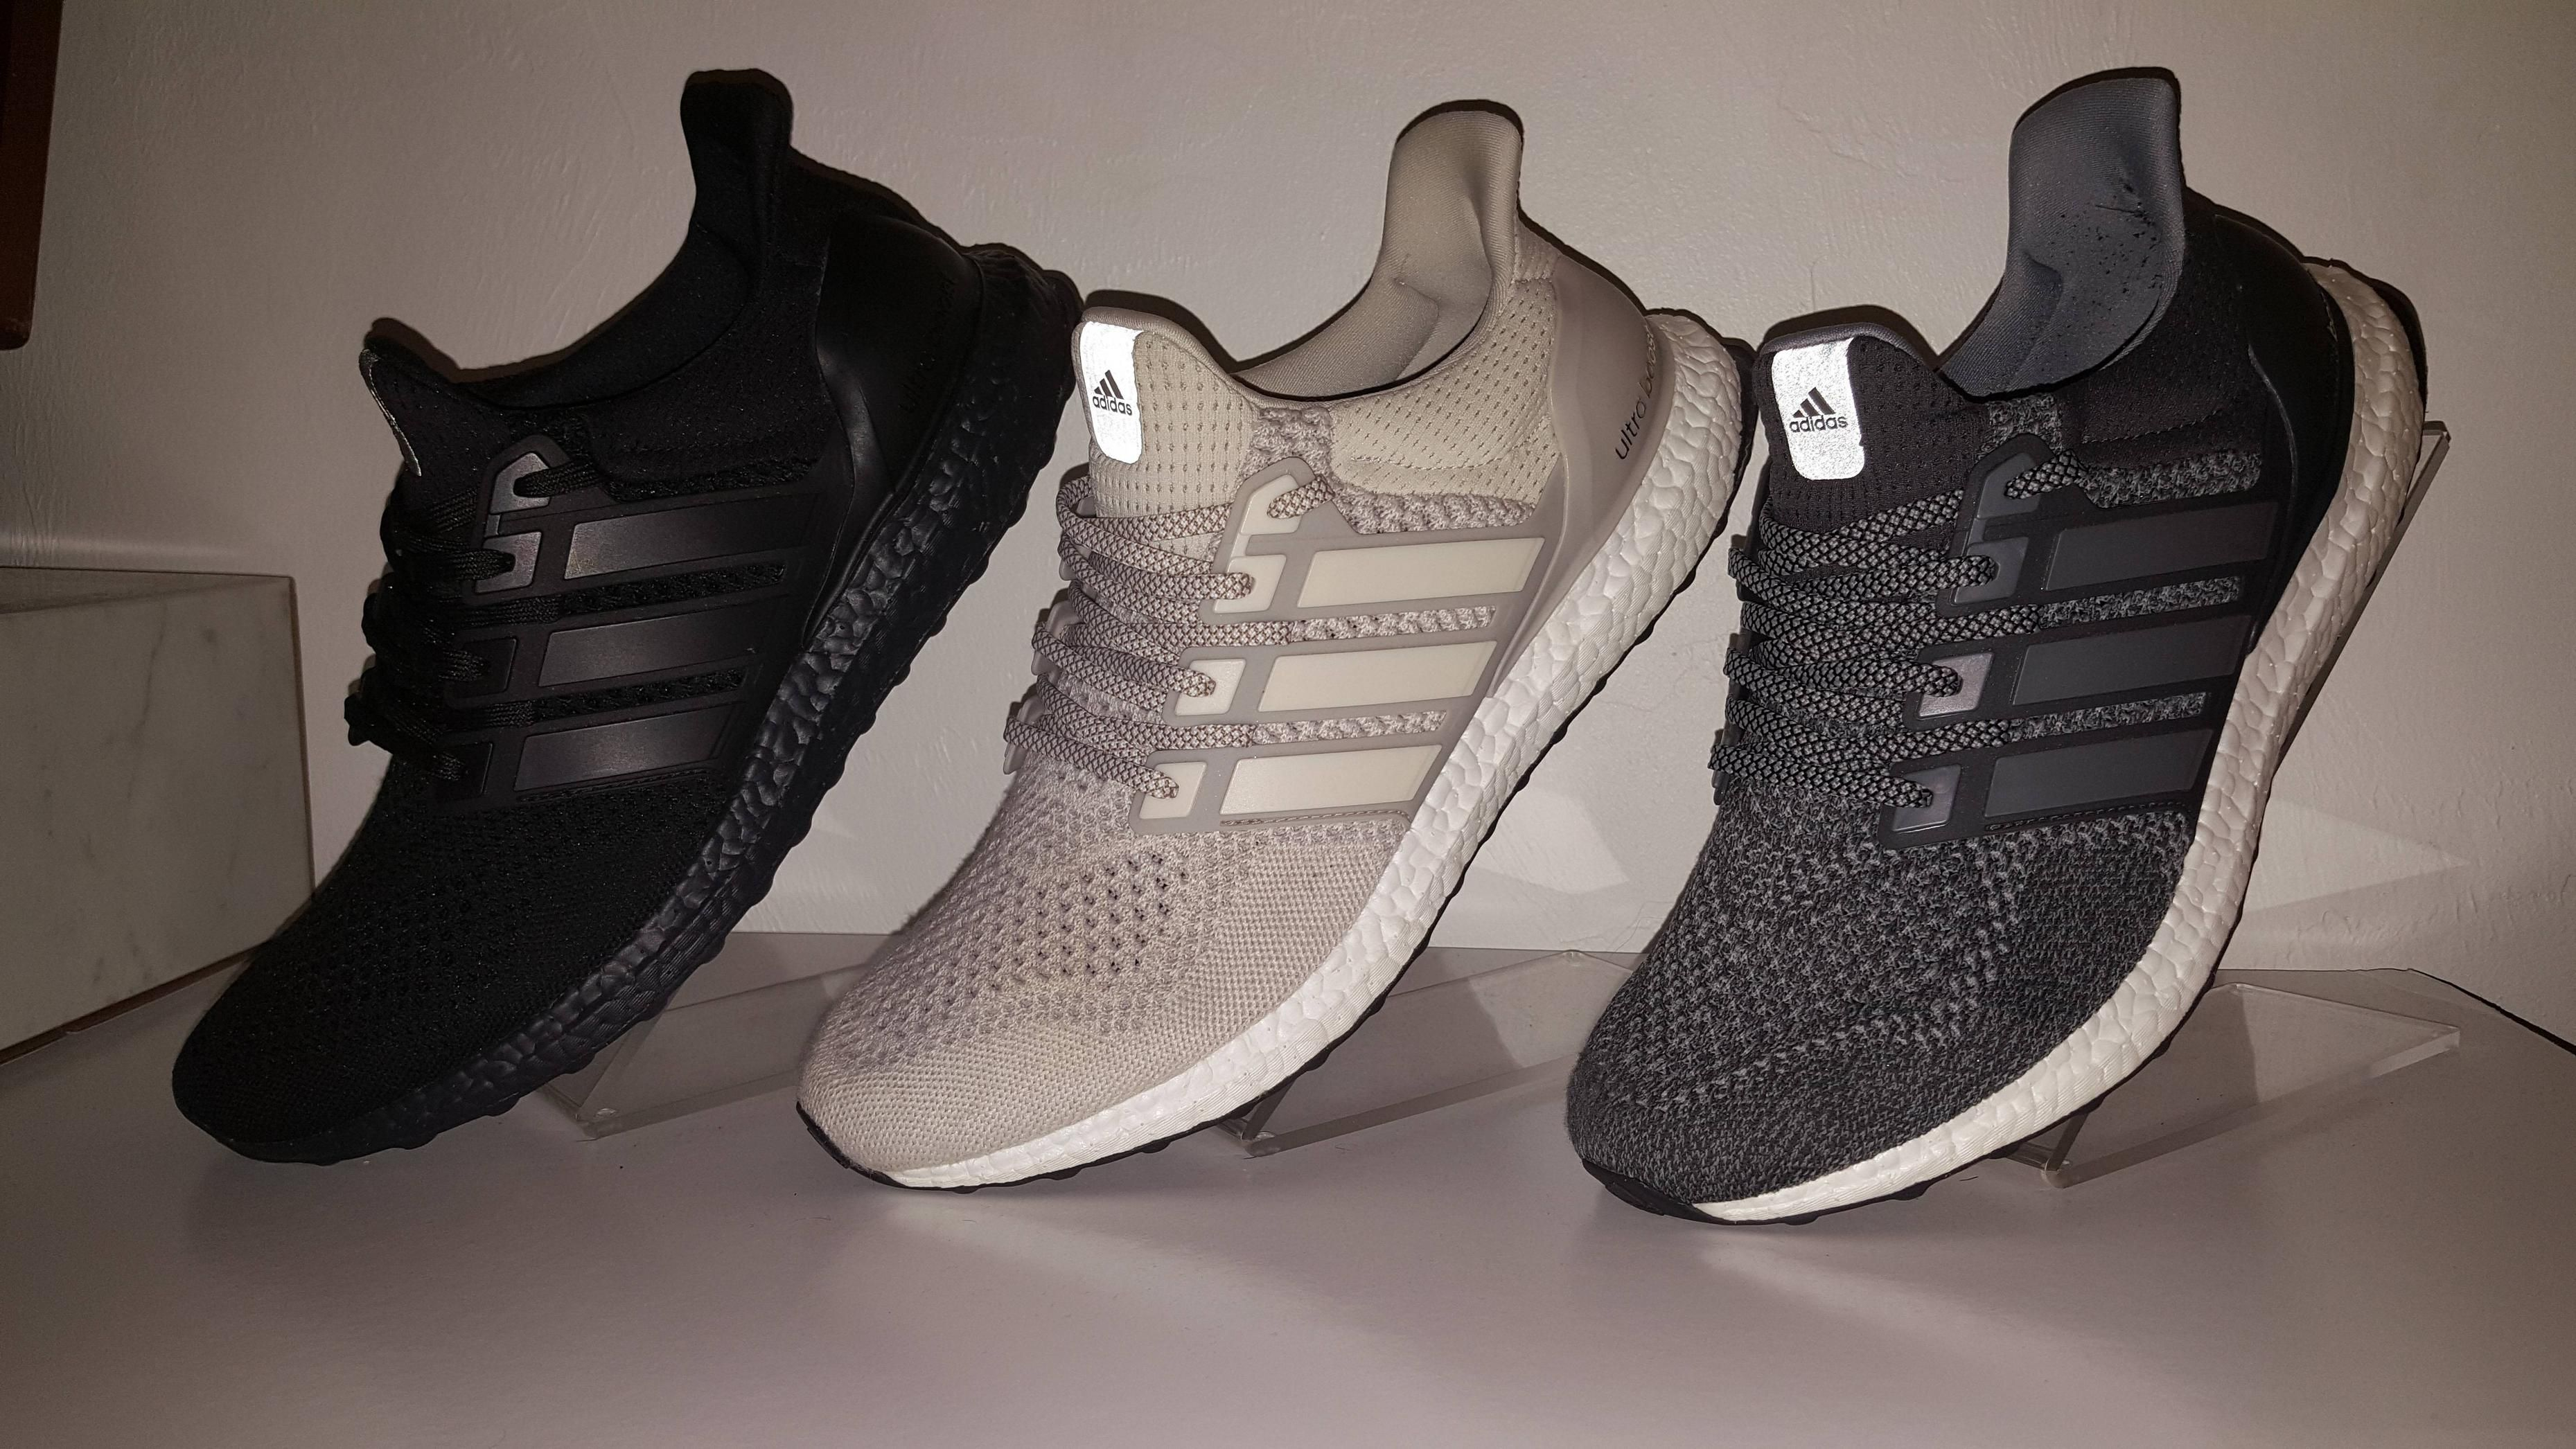 The essential 1.0s